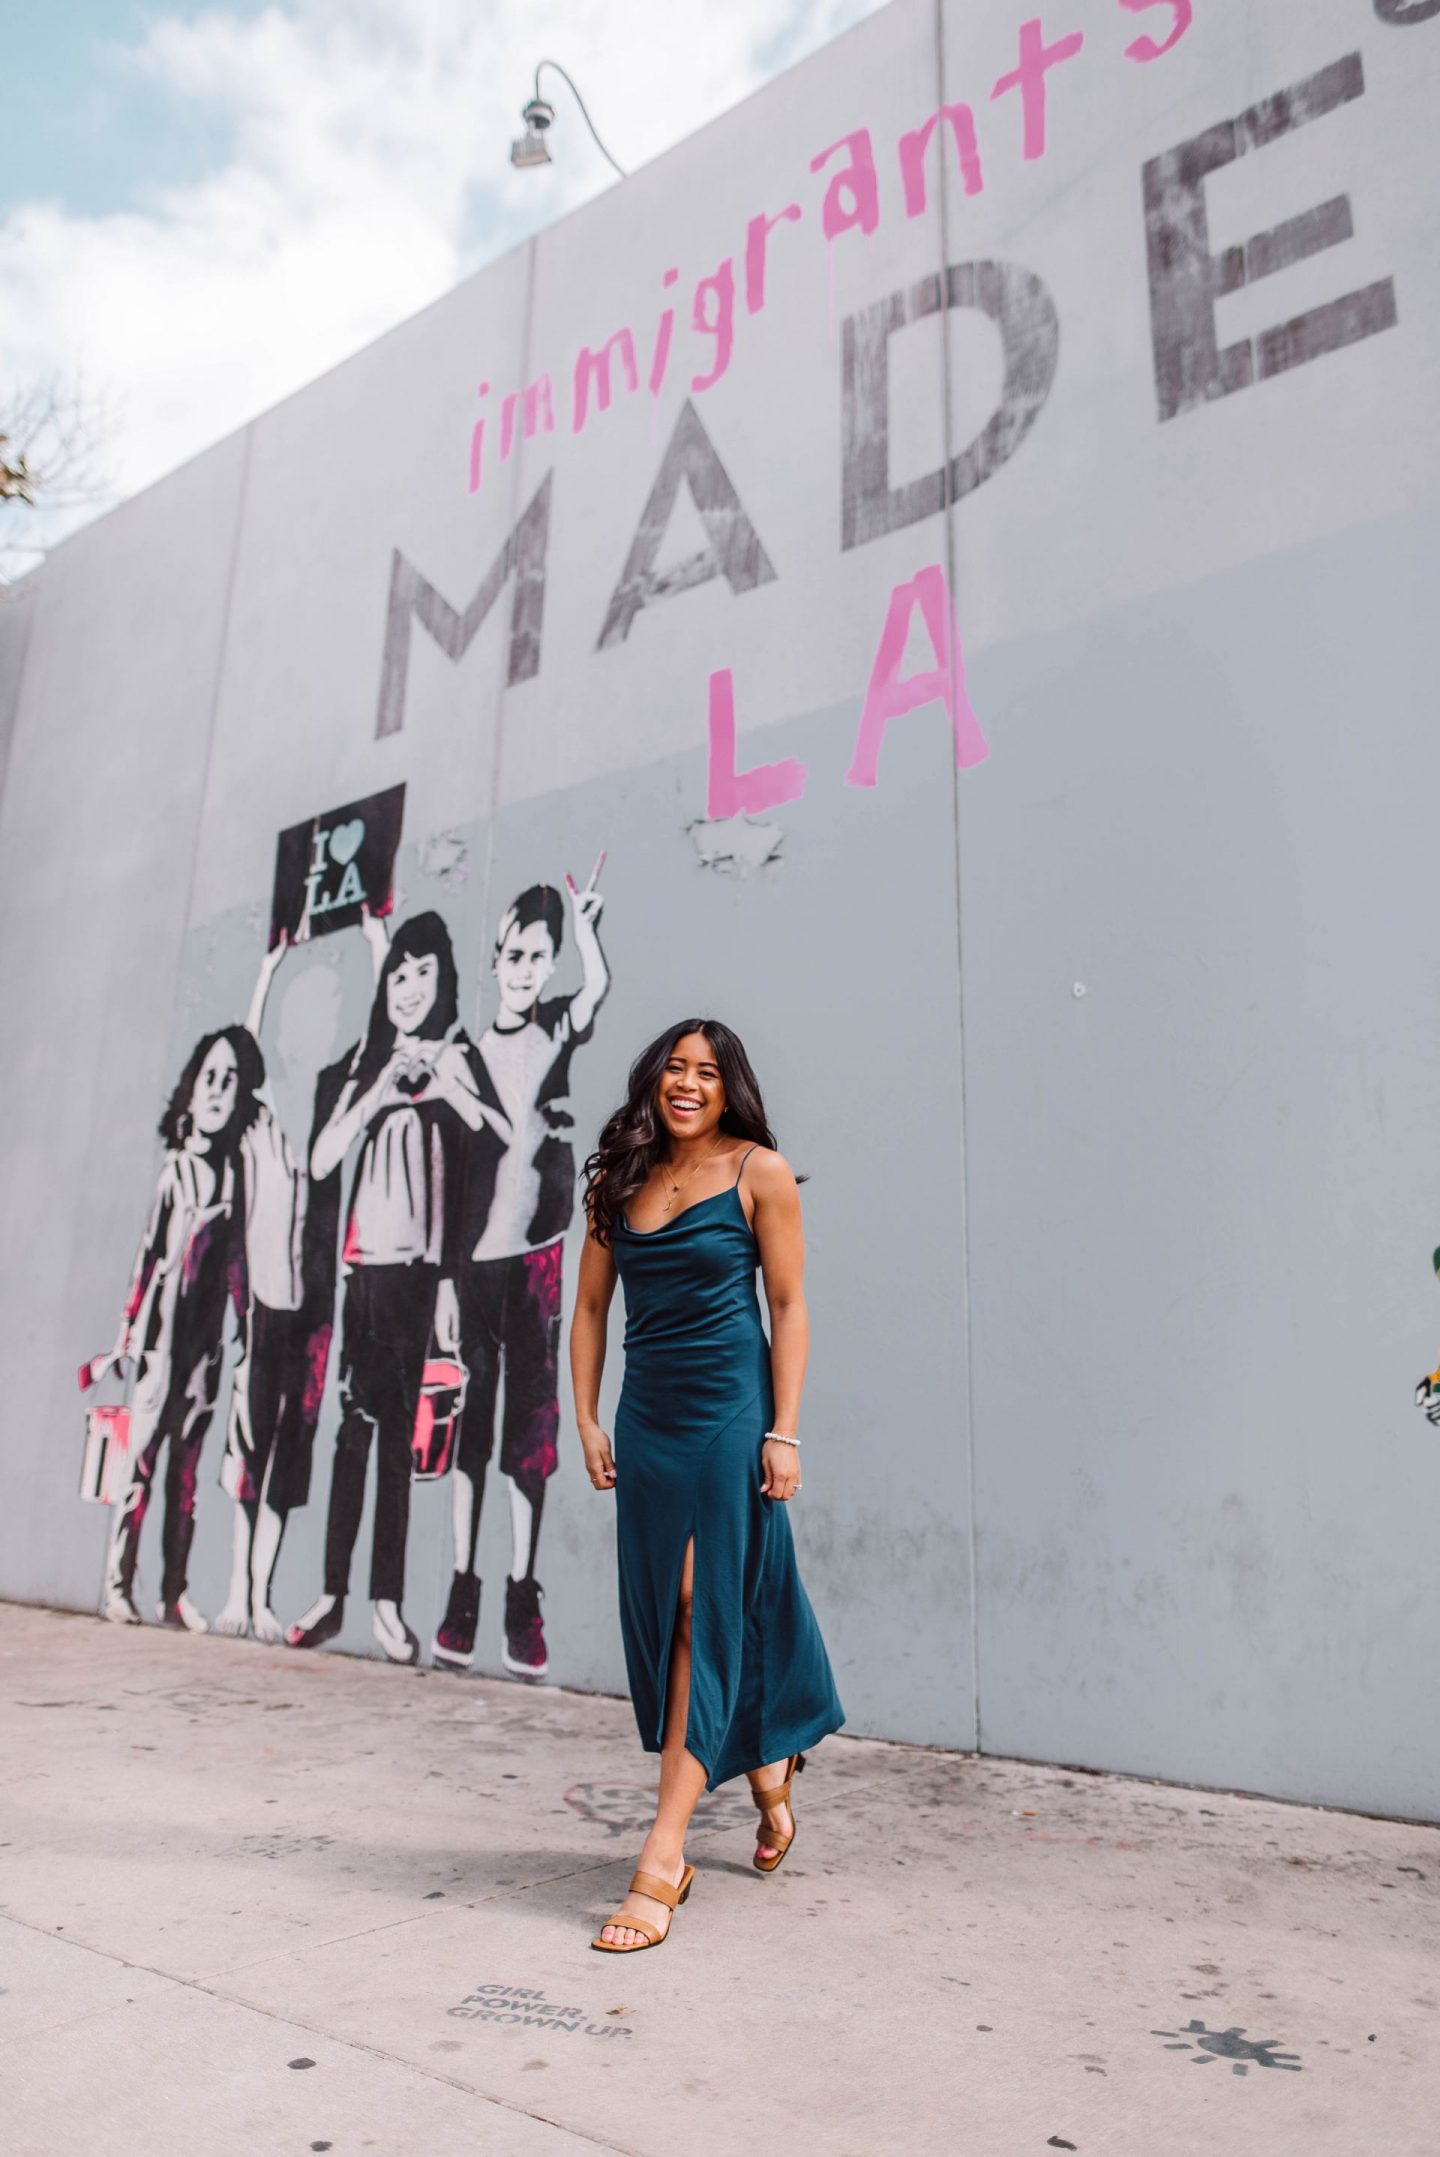 LA's Most Instagrammable Places: Melrose Avenue Edition